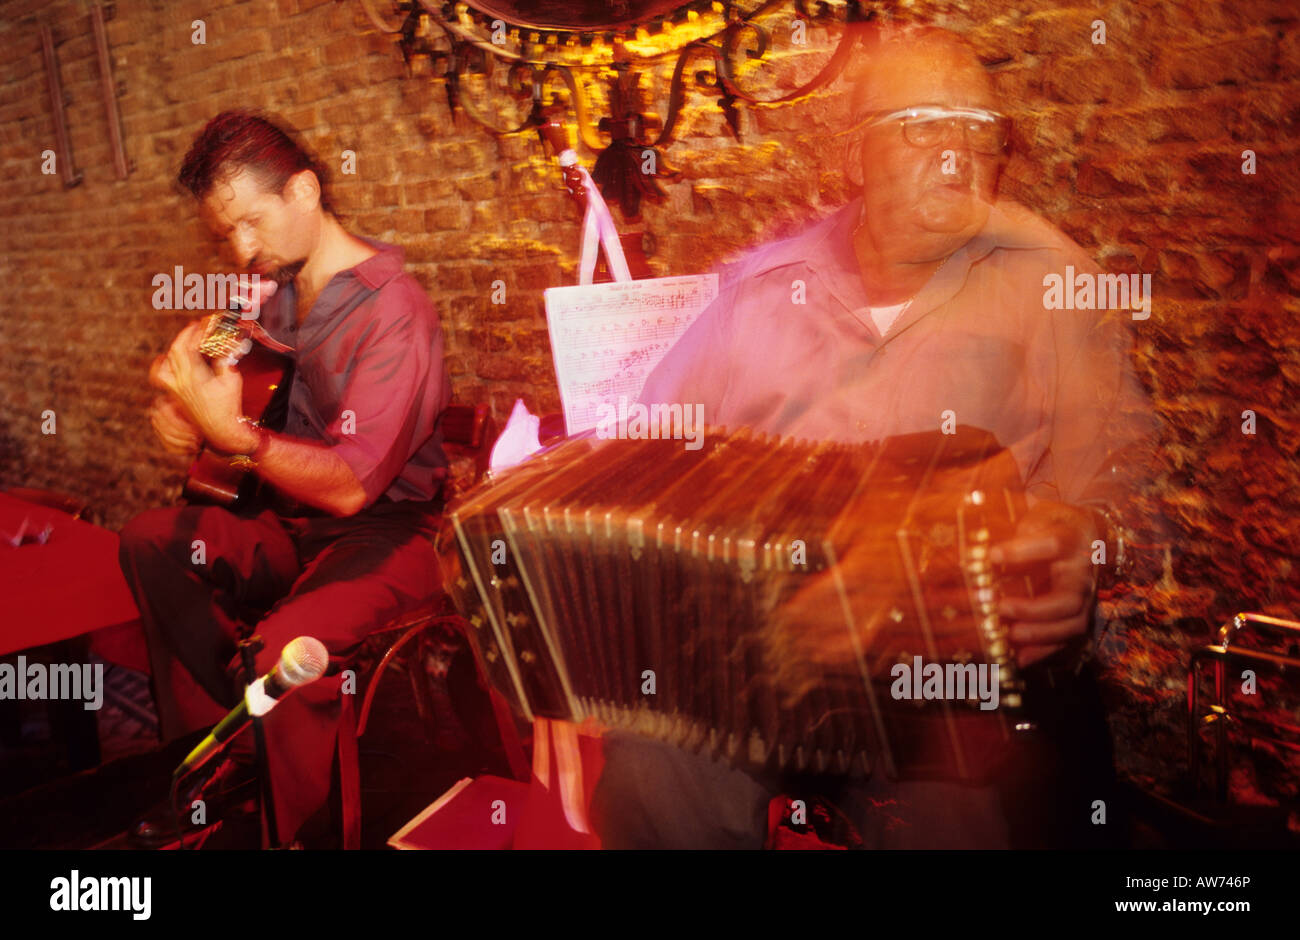 Tango musicians show playing at Mitos Argentinos in San Telmo Buenos Aires Argentina South America - Stock Image